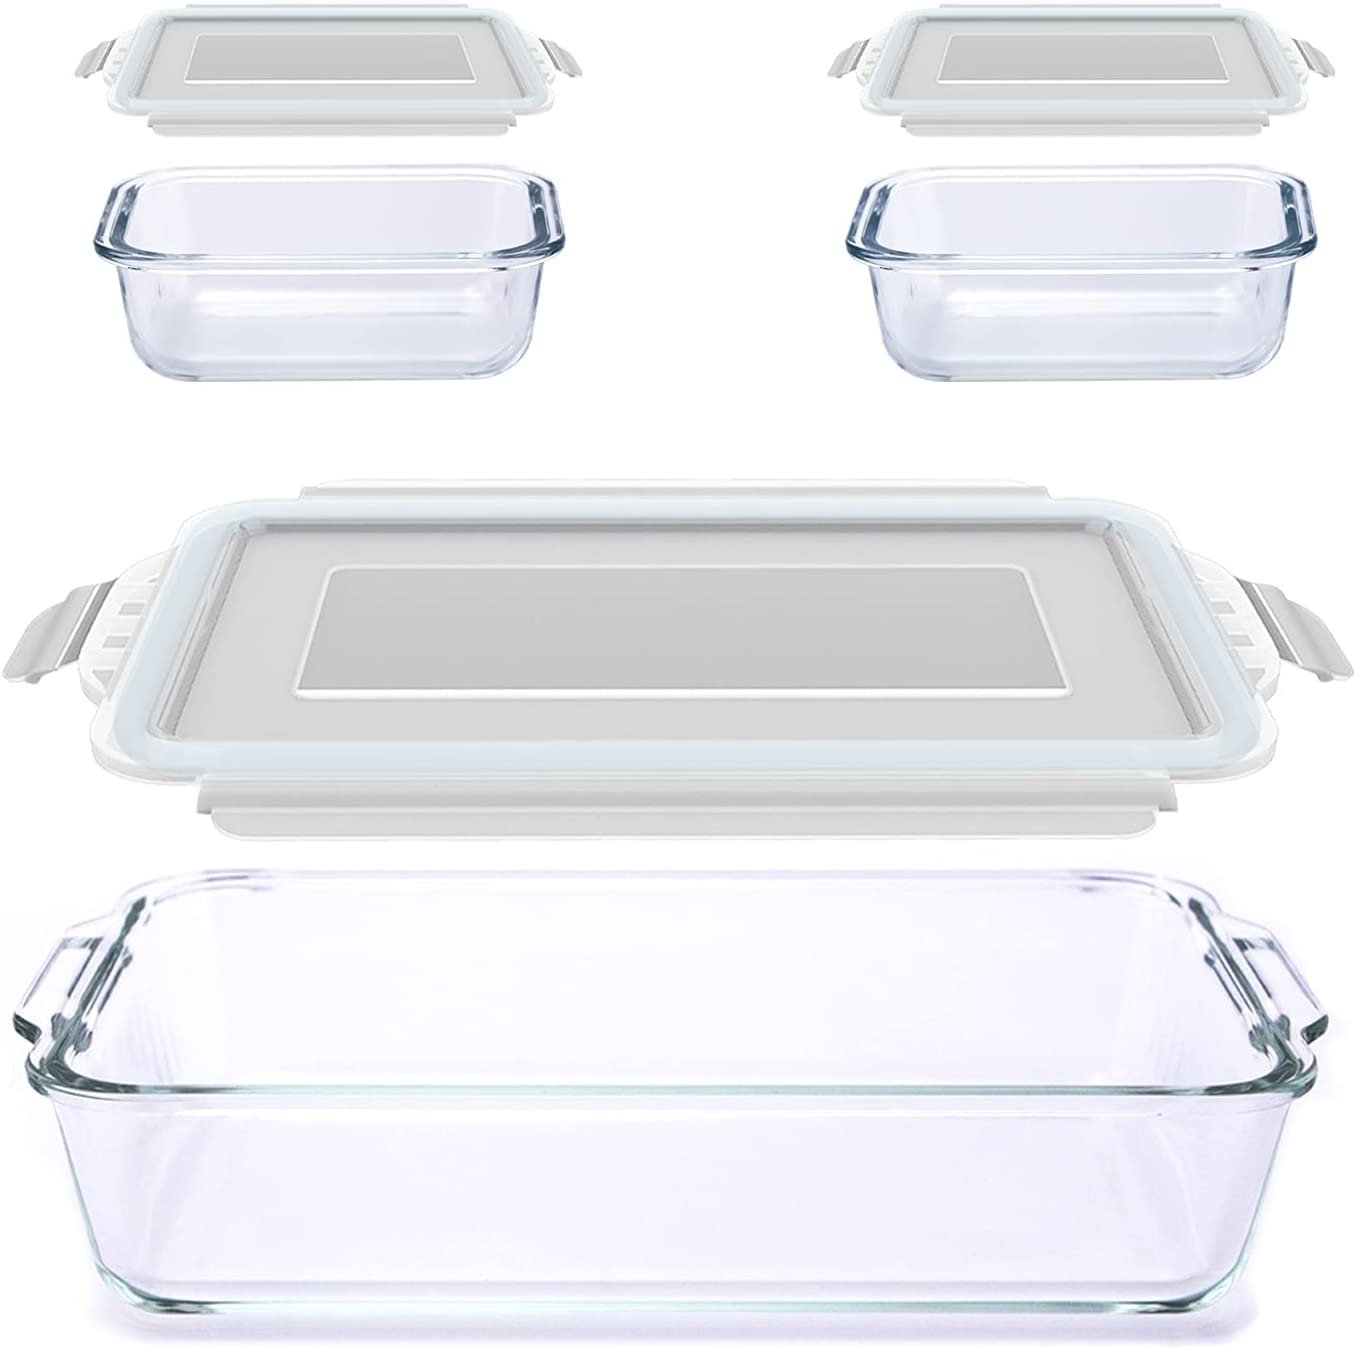 Luvan 3 Pack Glass Baking Dishes Set Includes 1pc Rectangular Glass Bakeware and 2pcs Food Storage Containers with Lids, Easy Grab, Leak-proof and Stackable for Easy Storage (74oz,12oz)